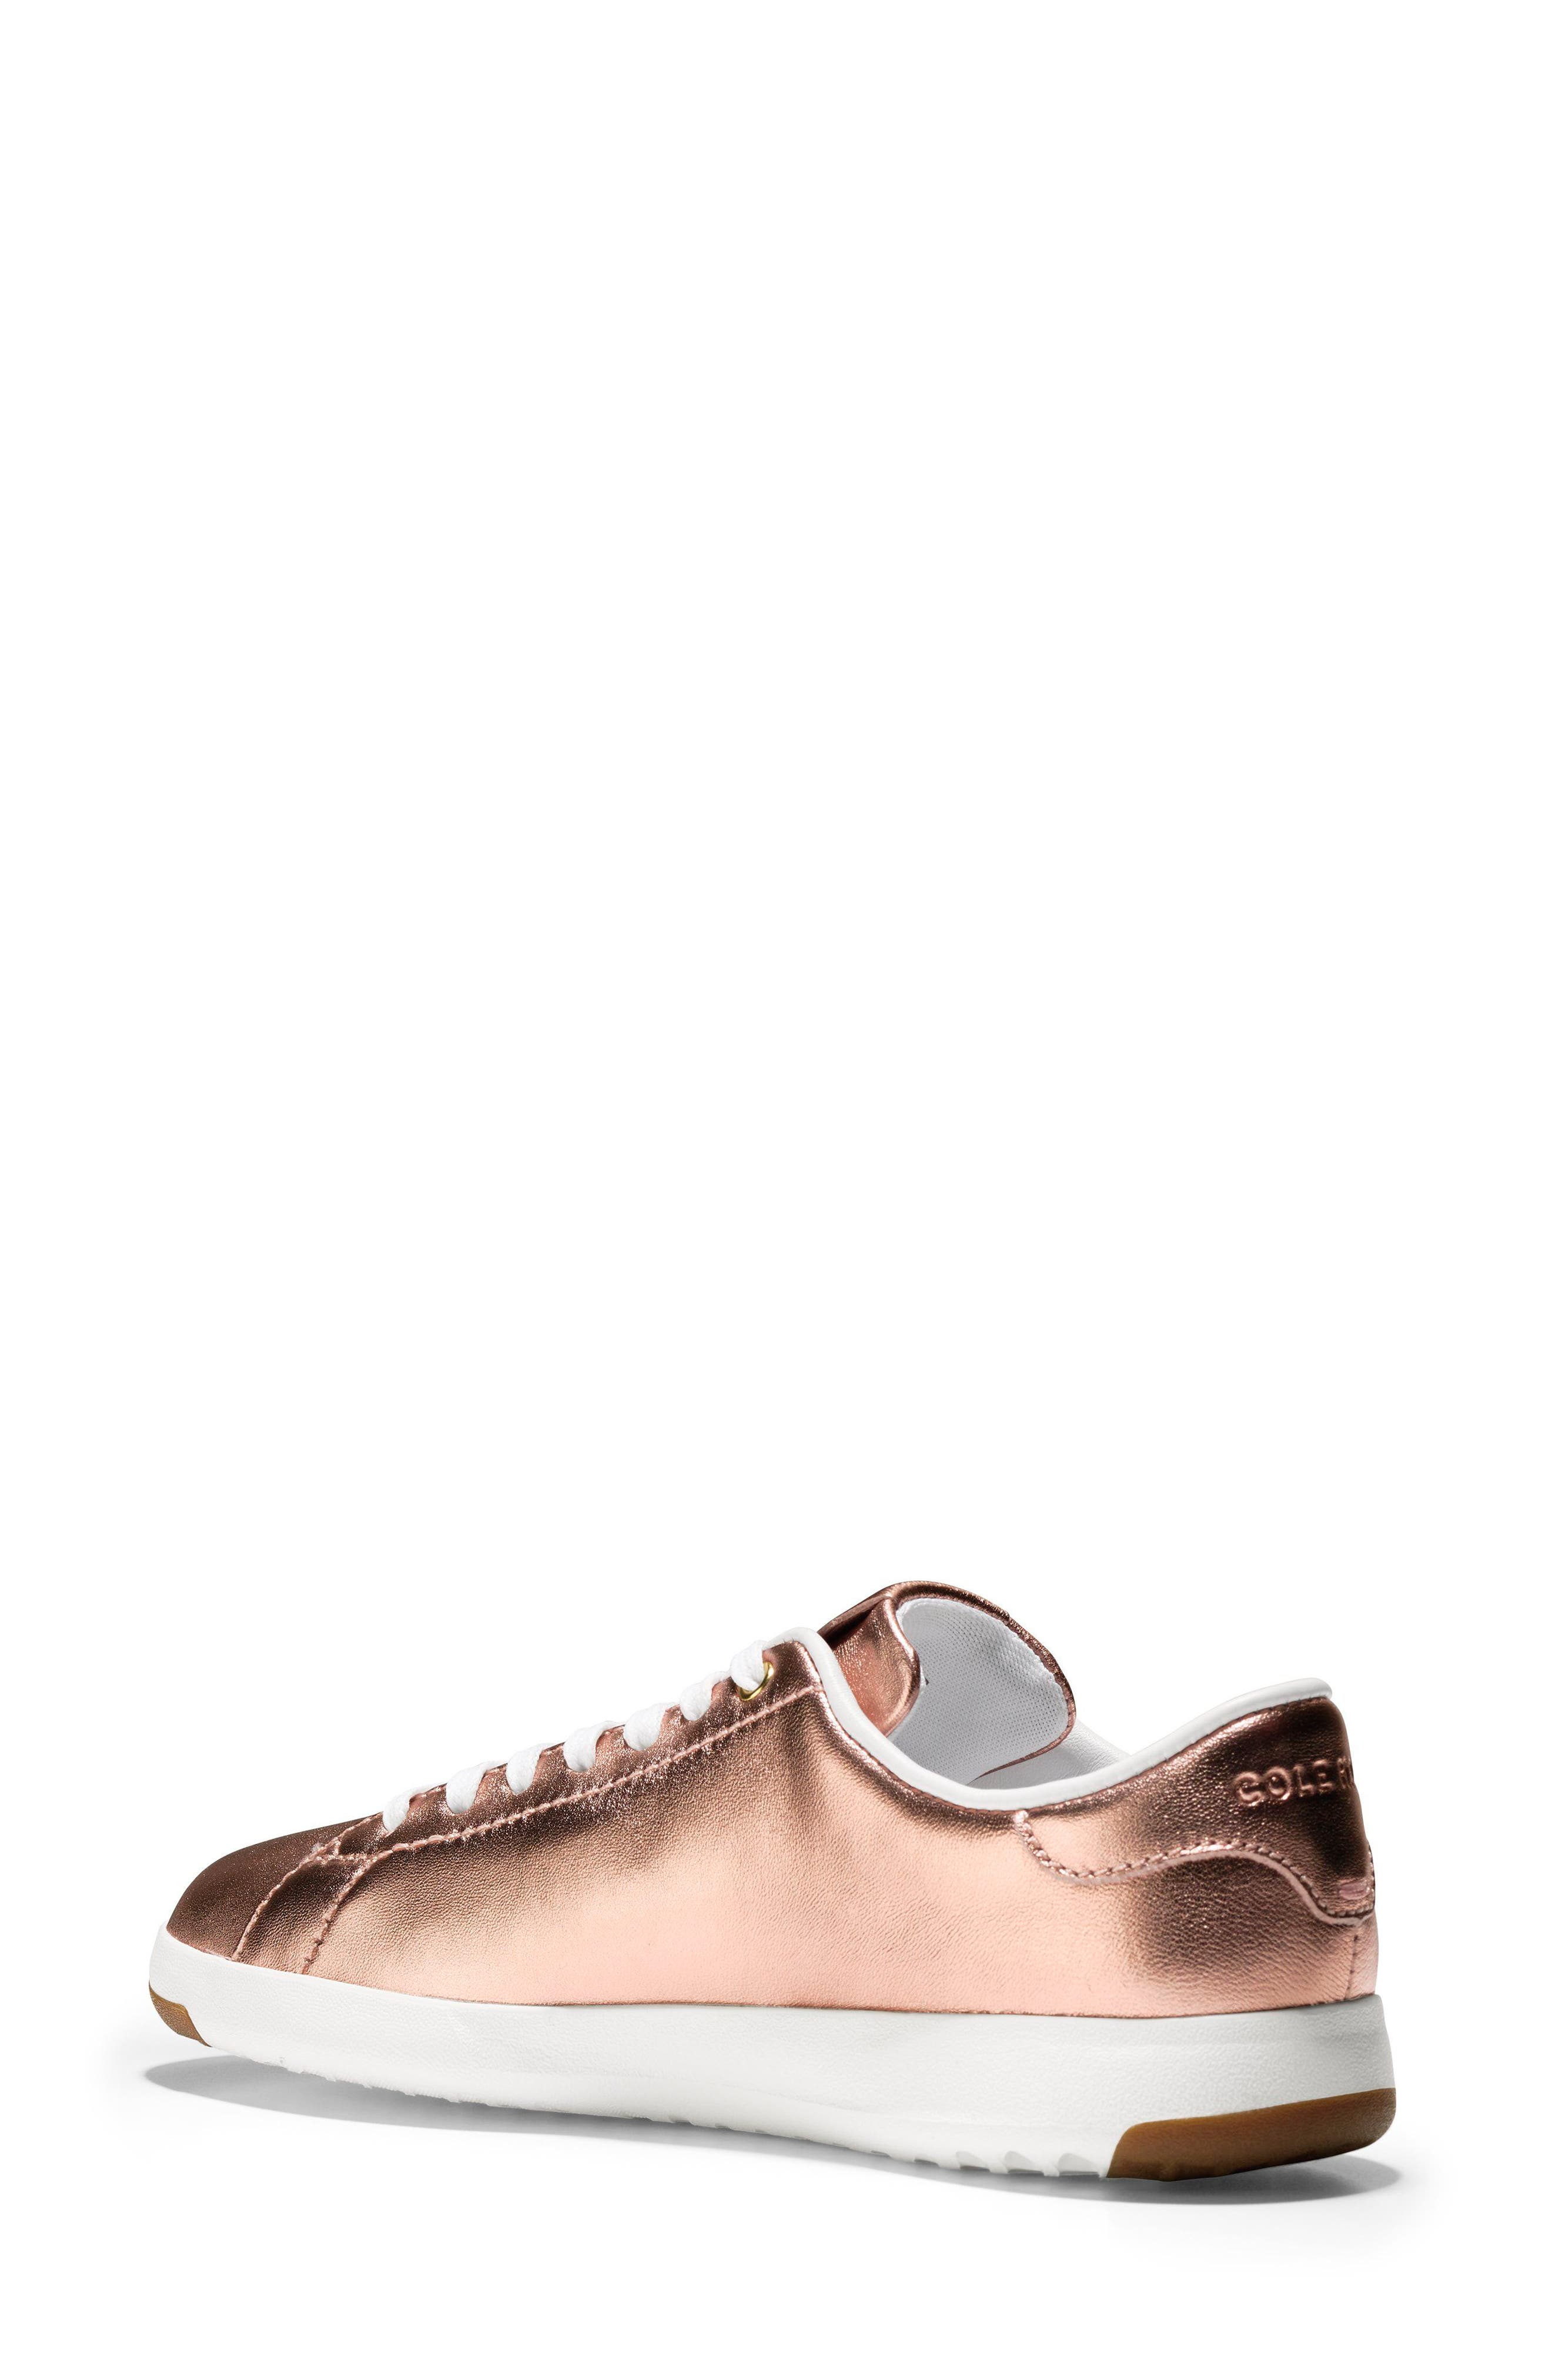 GrandPro Tennis Shoe,                             Alternate thumbnail 2, color,                             ROSE GOLD LEATHER